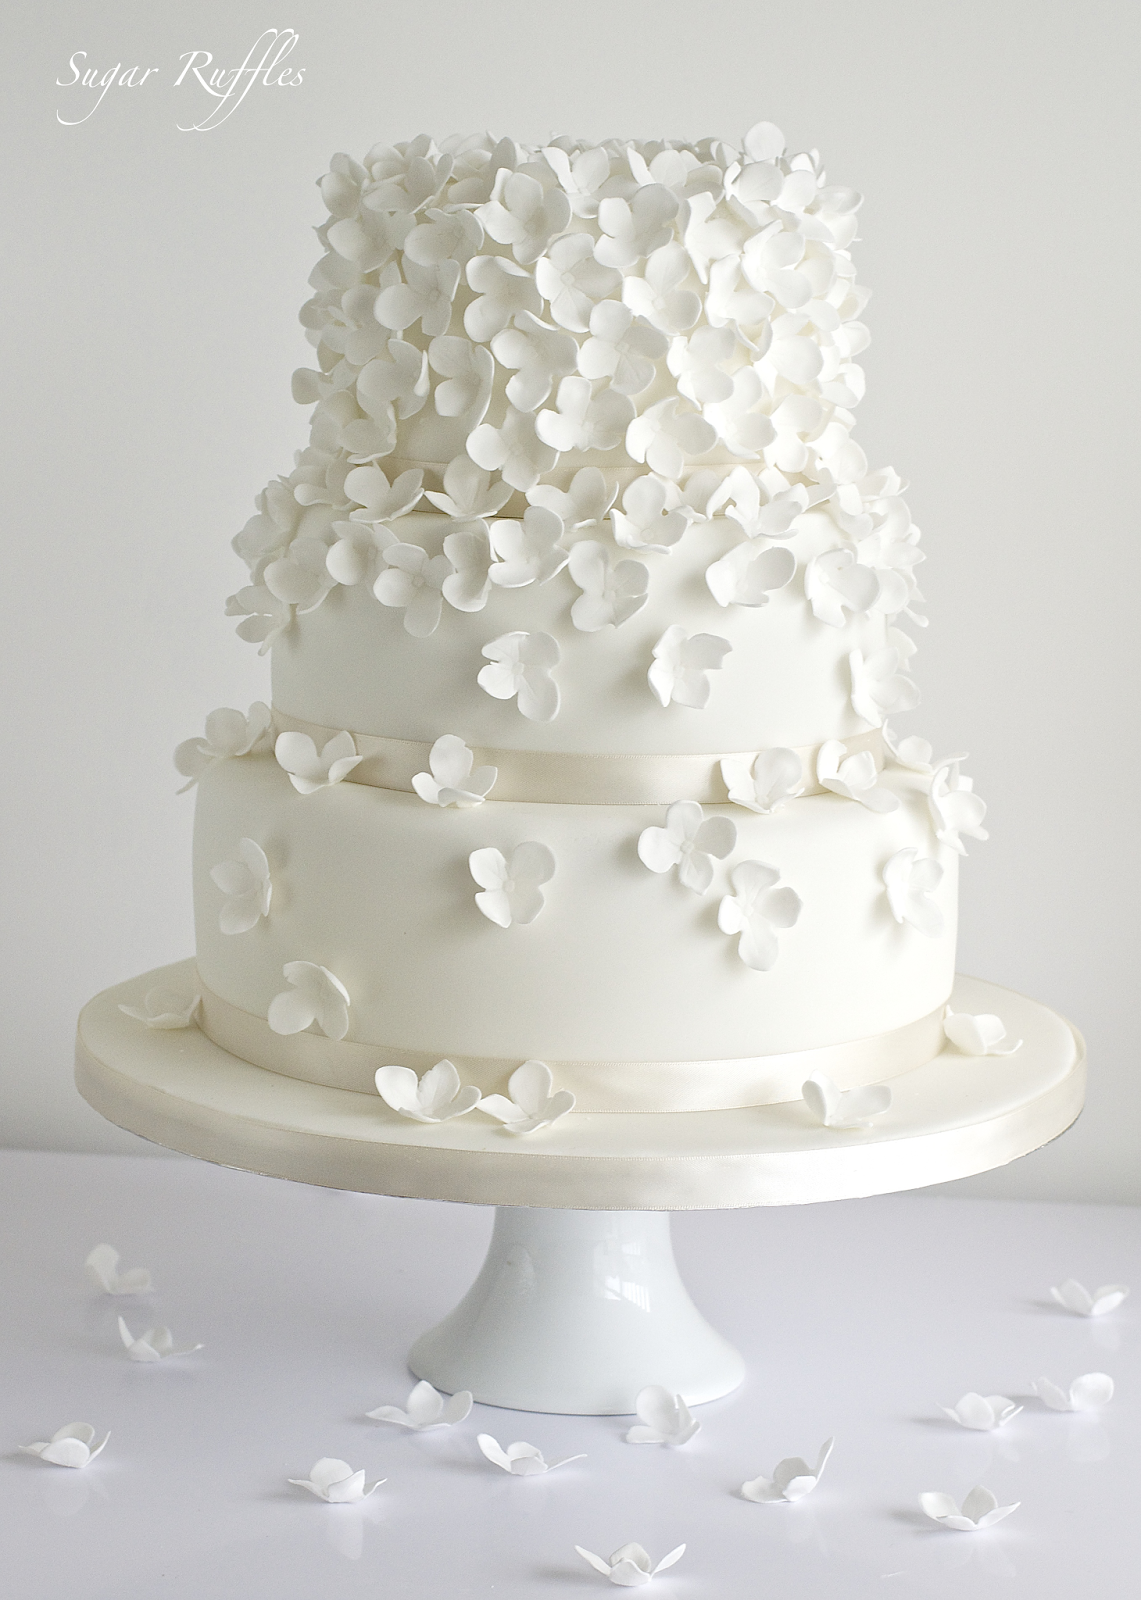 sugar ruffles elegant wedding cakes sugar ruffles wedding cakes barrow in furness 20586